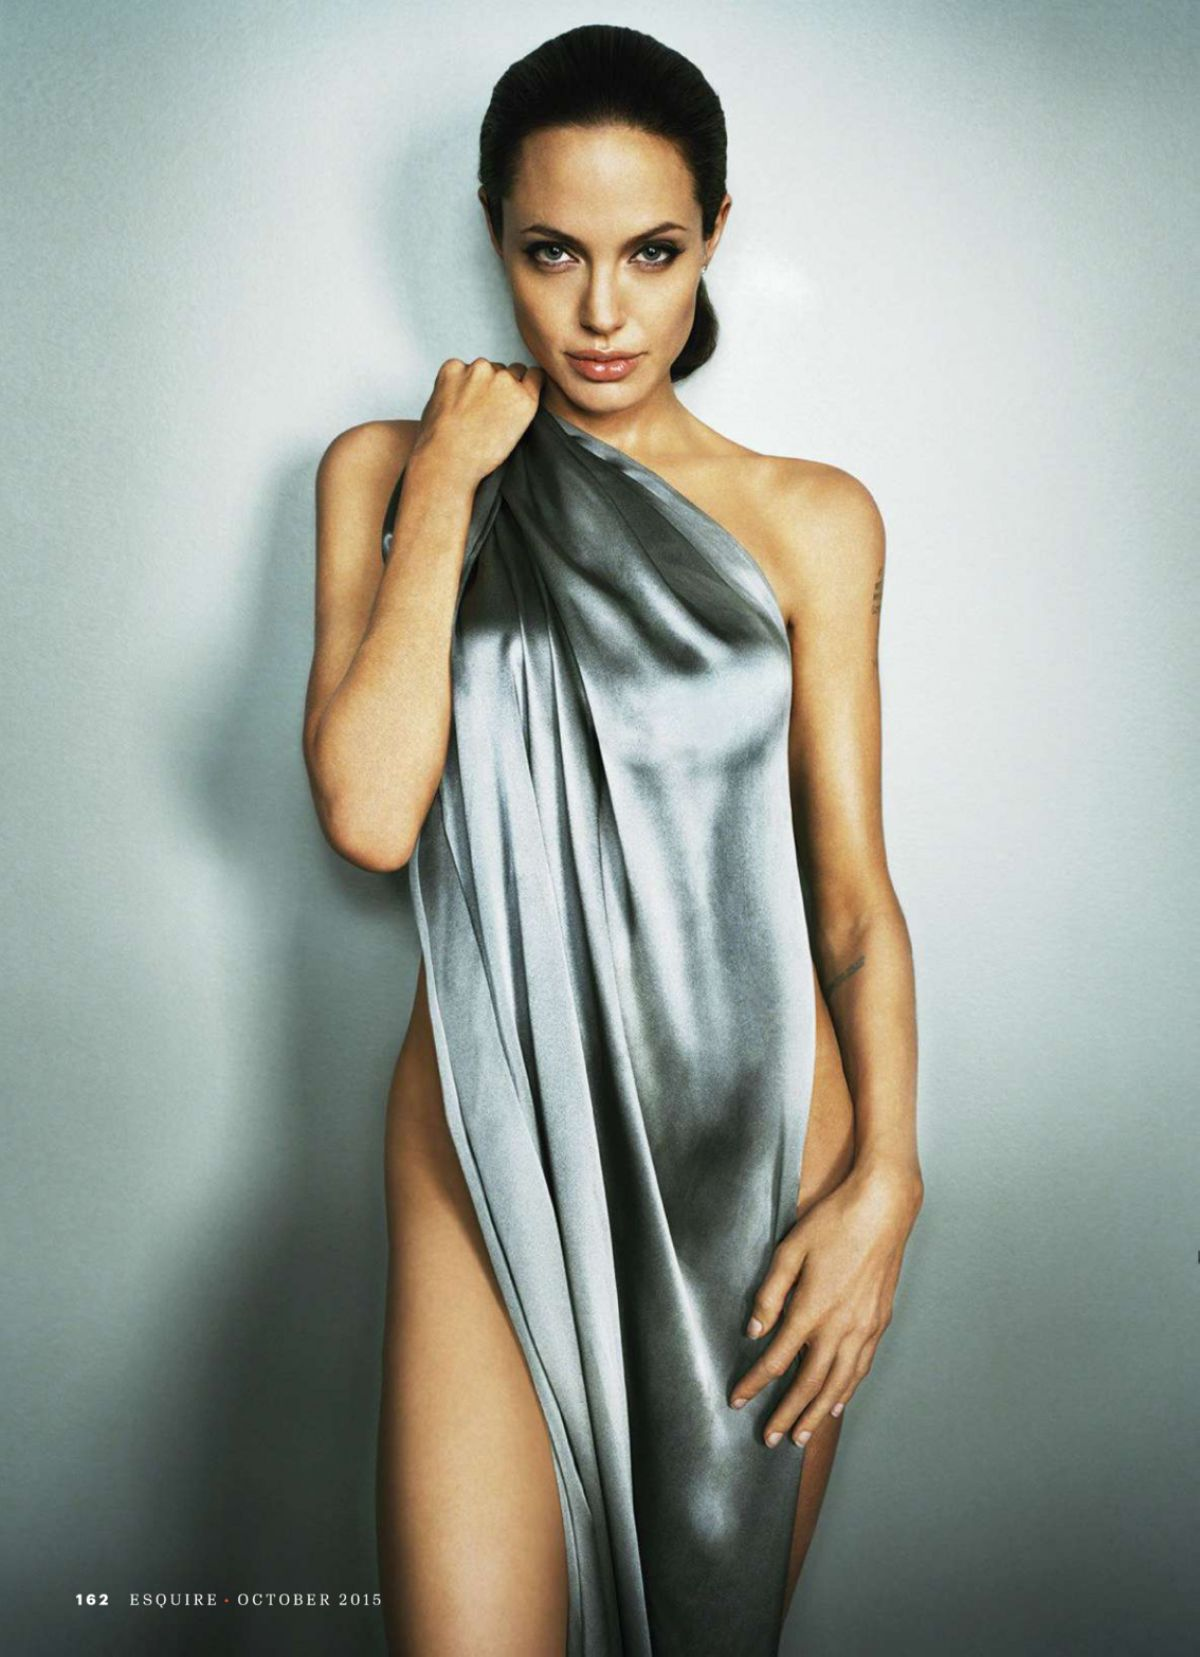 Angelina Jolie Archives - Page 2 of 9 - HawtCelebs - HawtCelebs